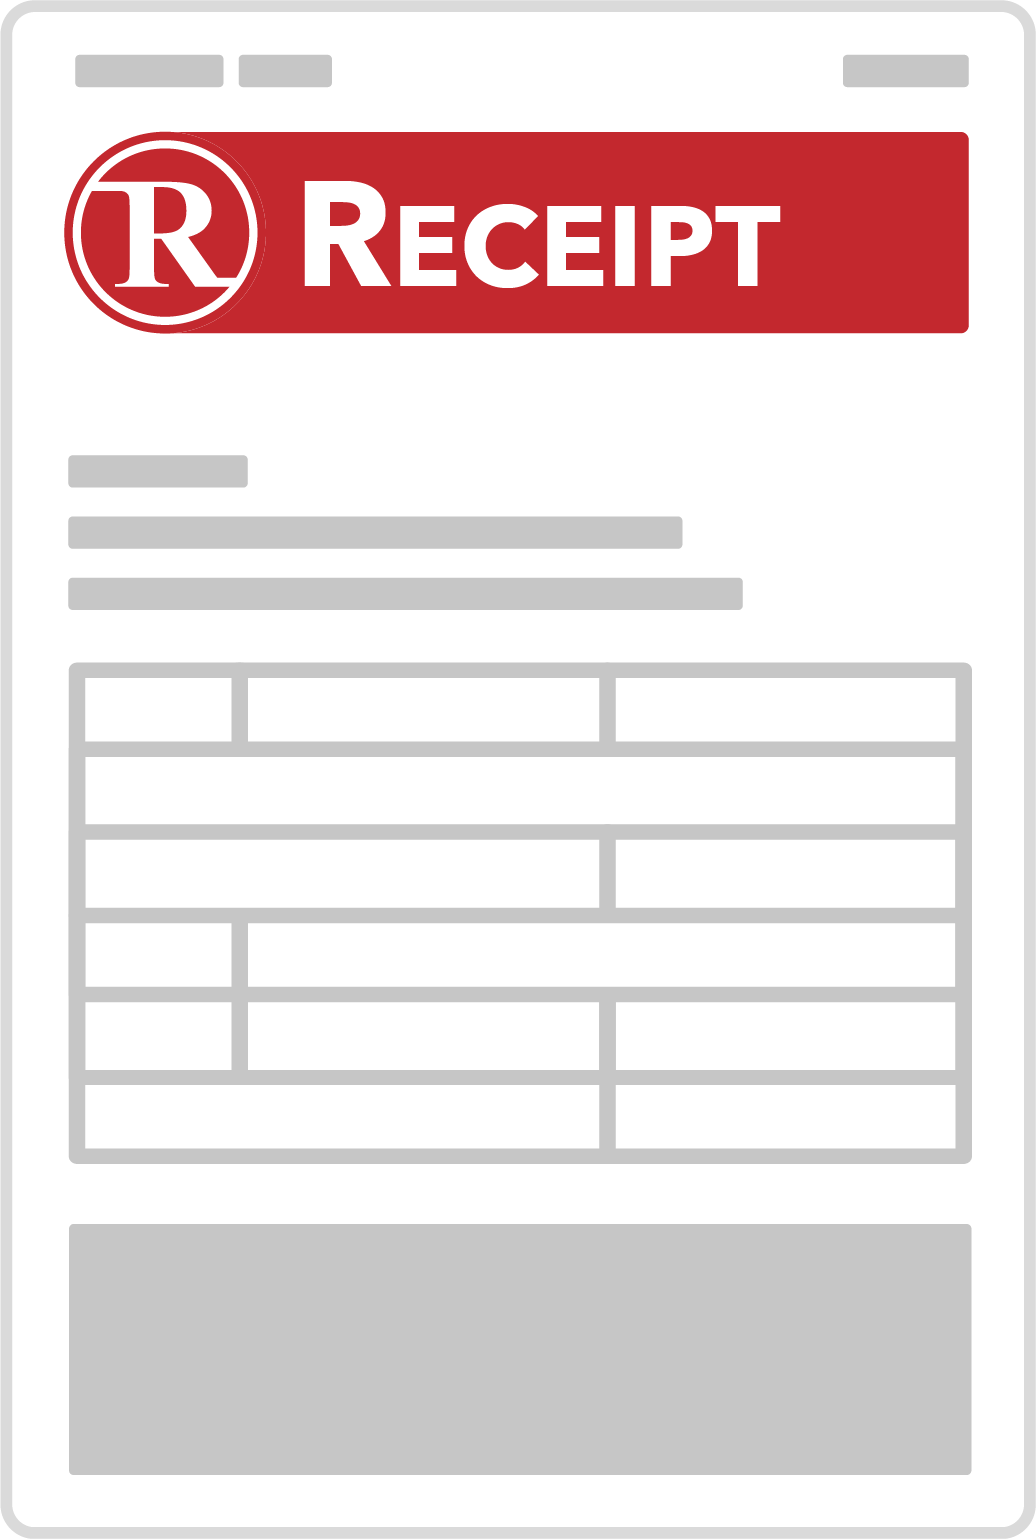 email receipt icon